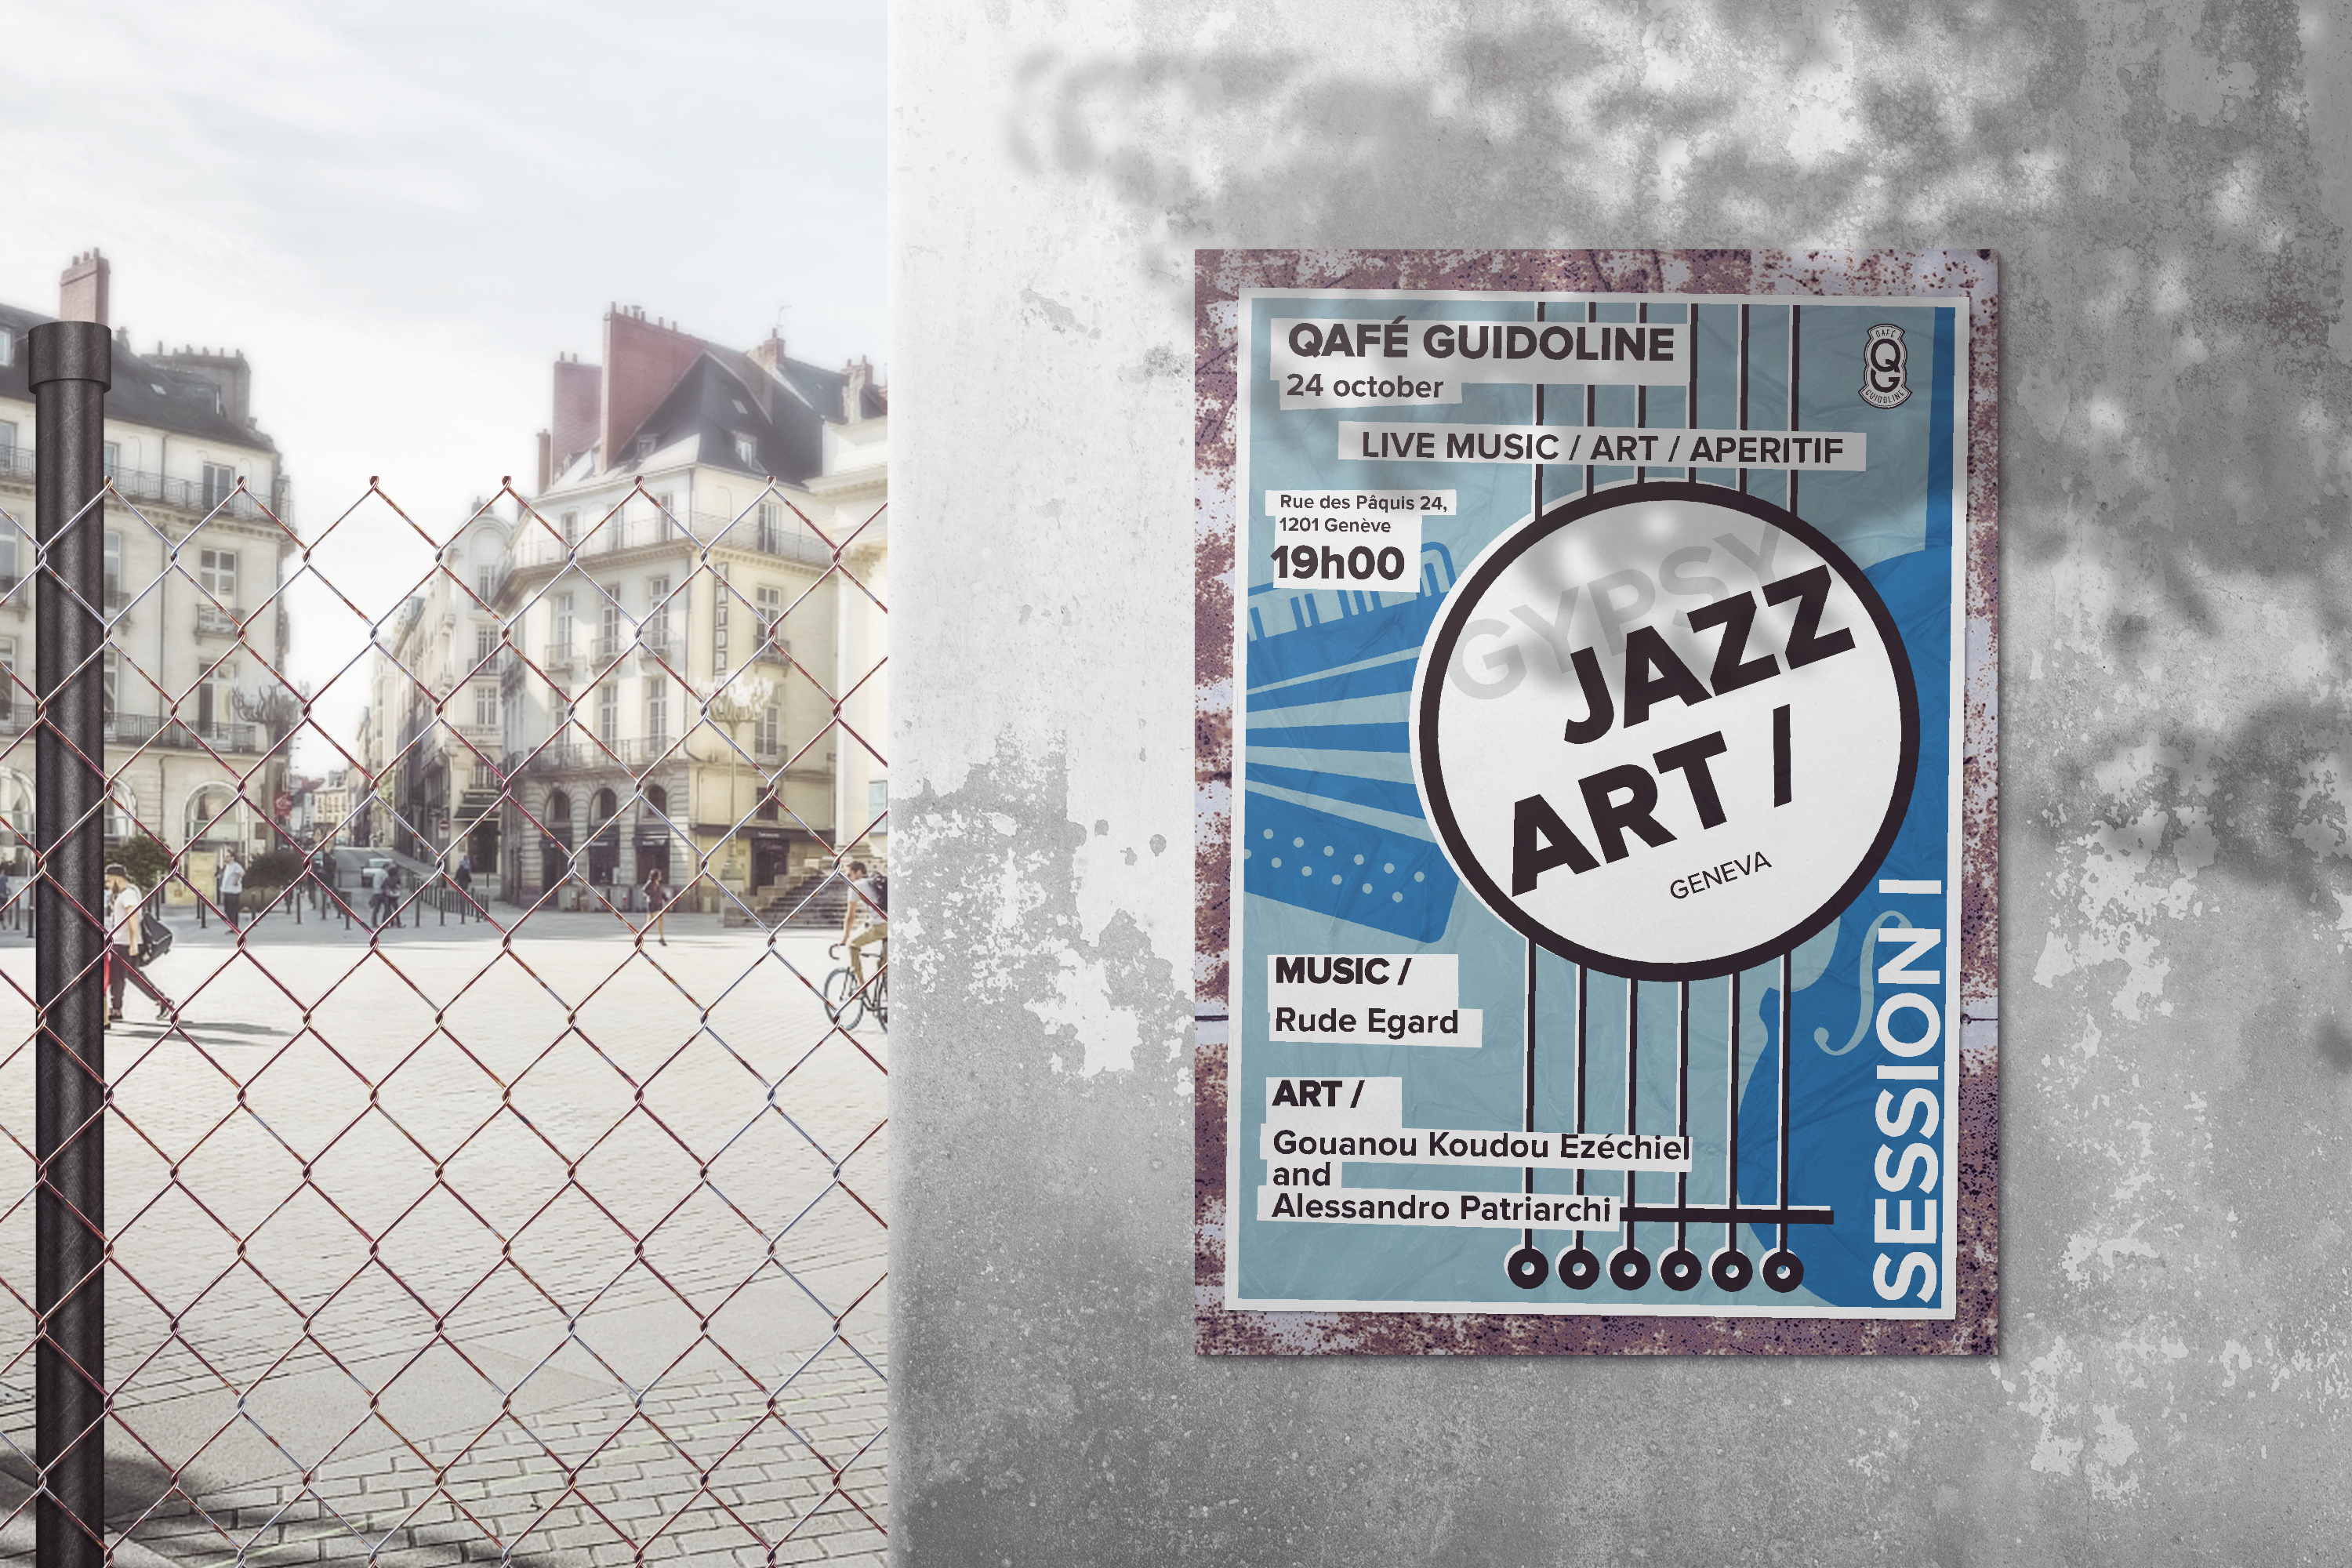 Jazz Art Geneva